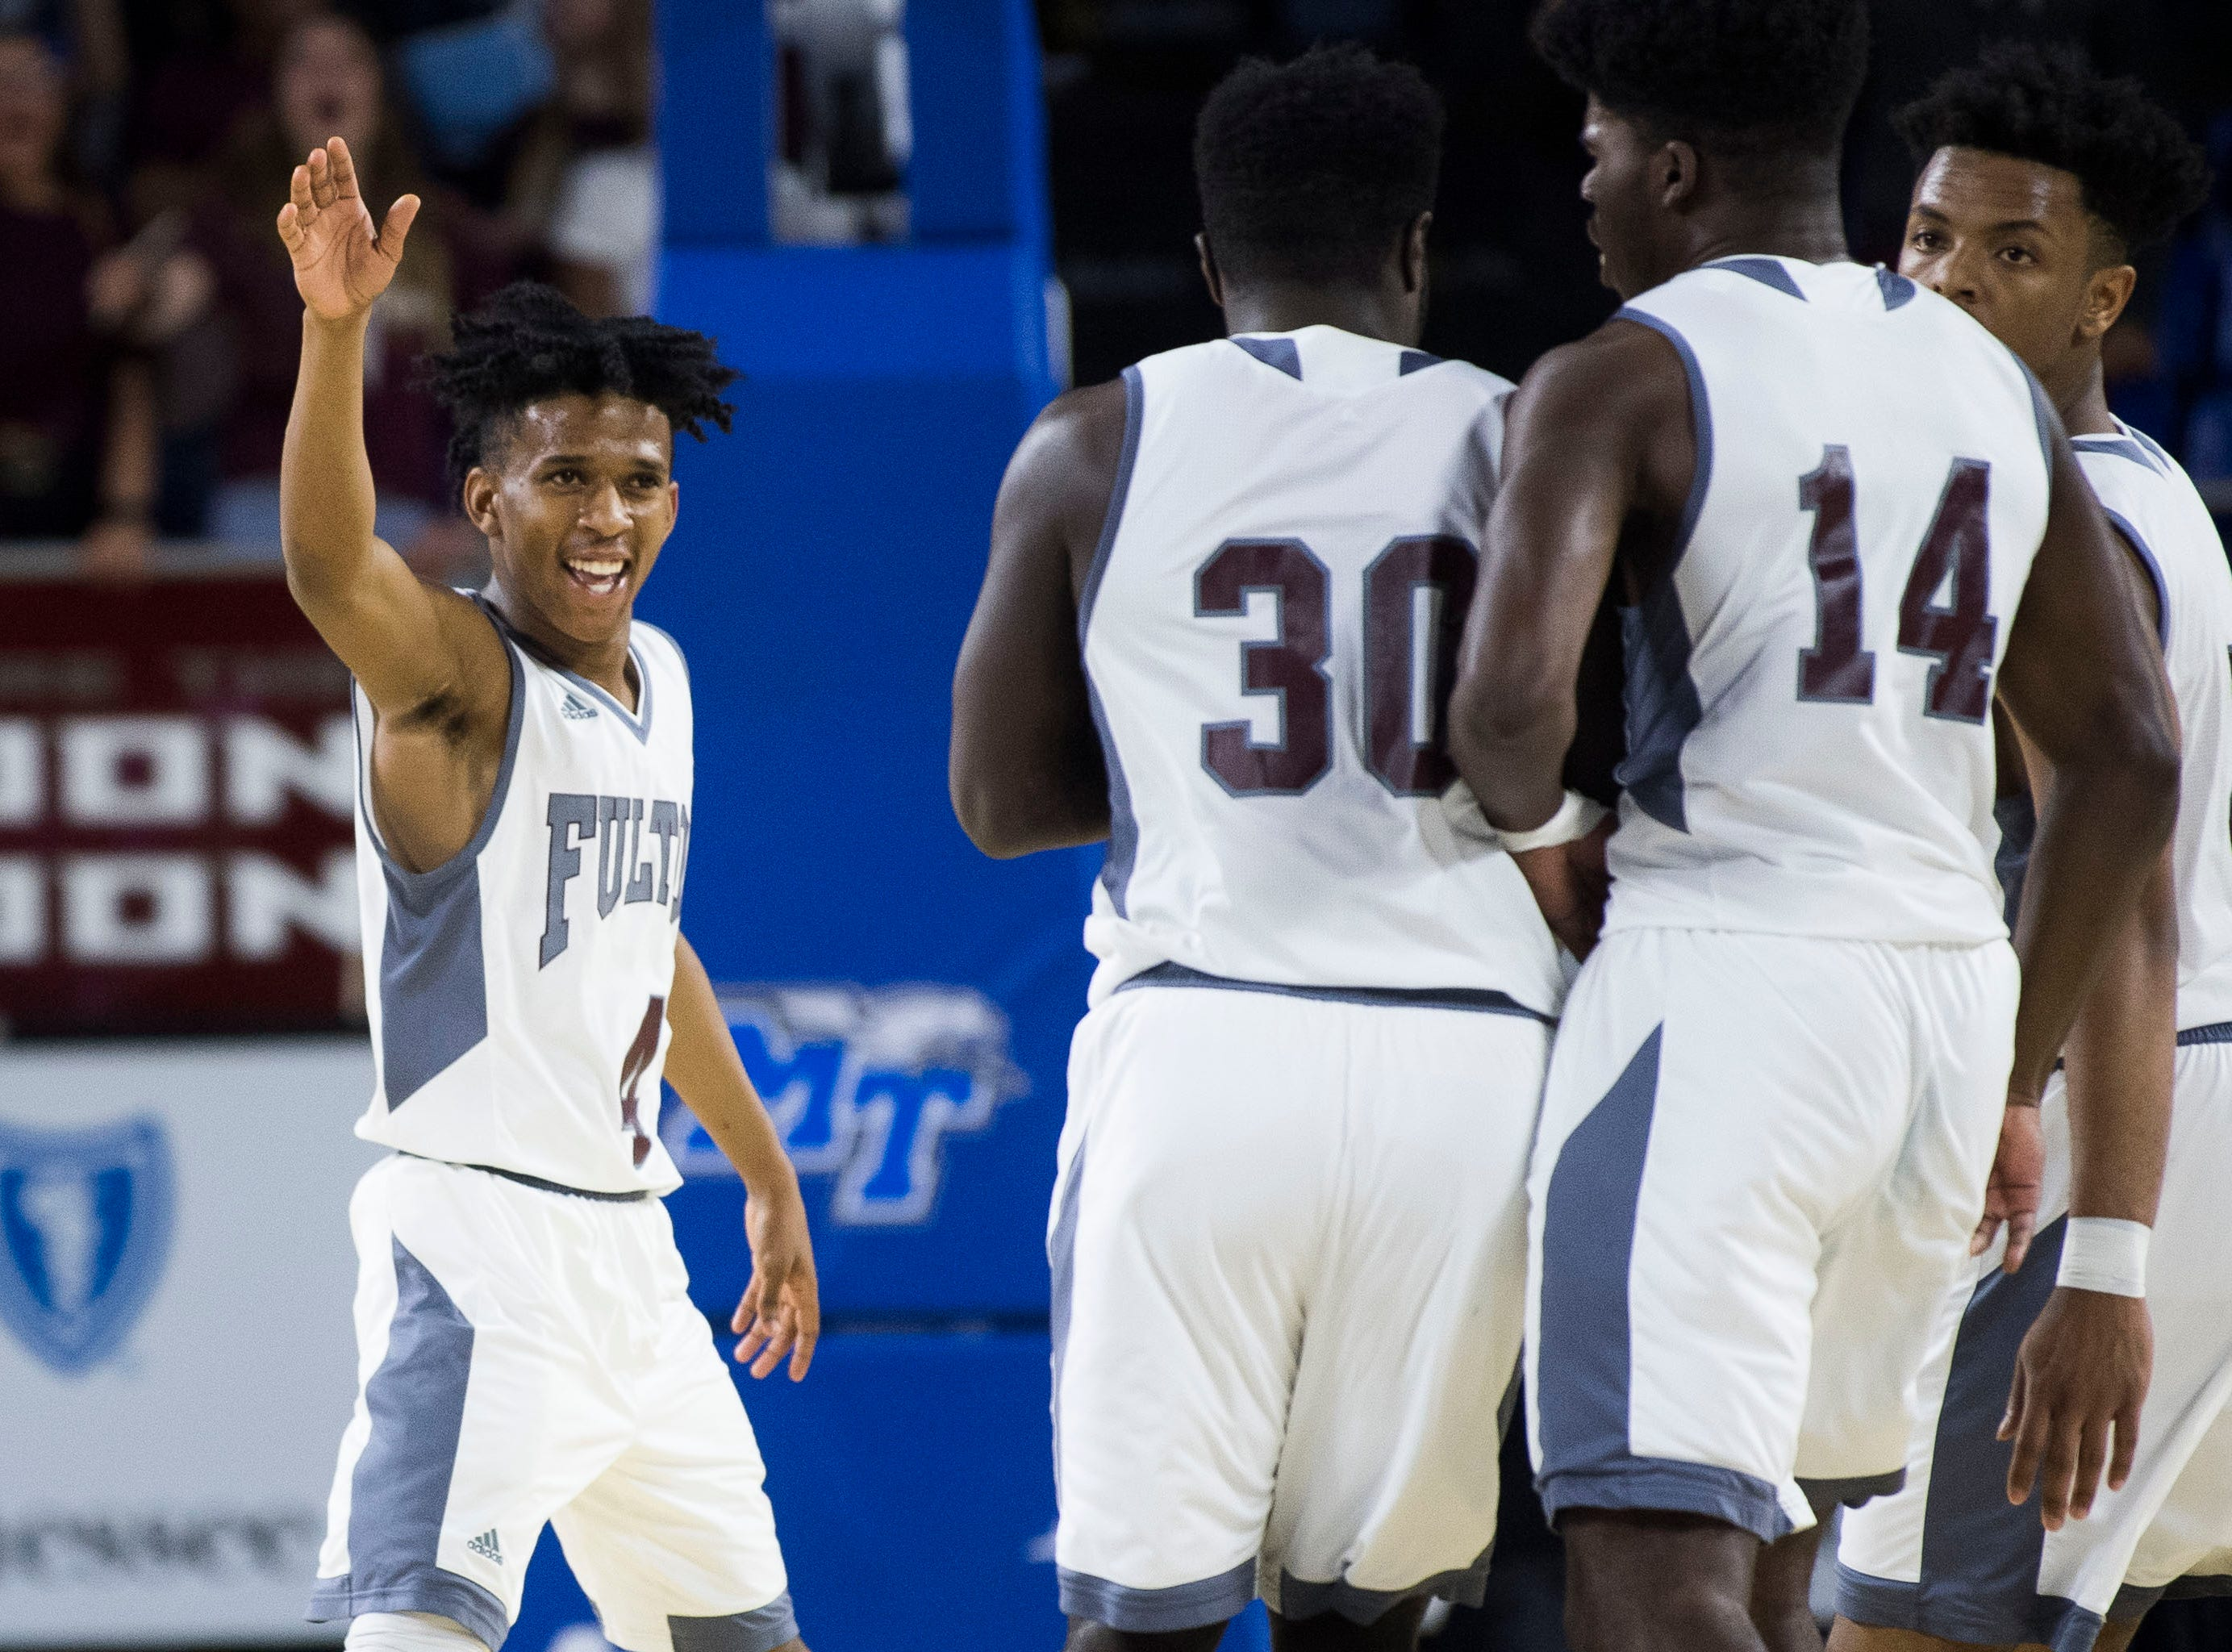 Fulton's Edward Lacy (4) congratulates a teammate on a three-point shot. Lacy, along with Ron Davis III and Deshawn Page, were named to the Class-AA All-Tournament Team. TSSAA Class-AA state championship game between Wooddale and Fulton at the Murphy Center in Murfreesboro, Saturday, March 16, 2019.